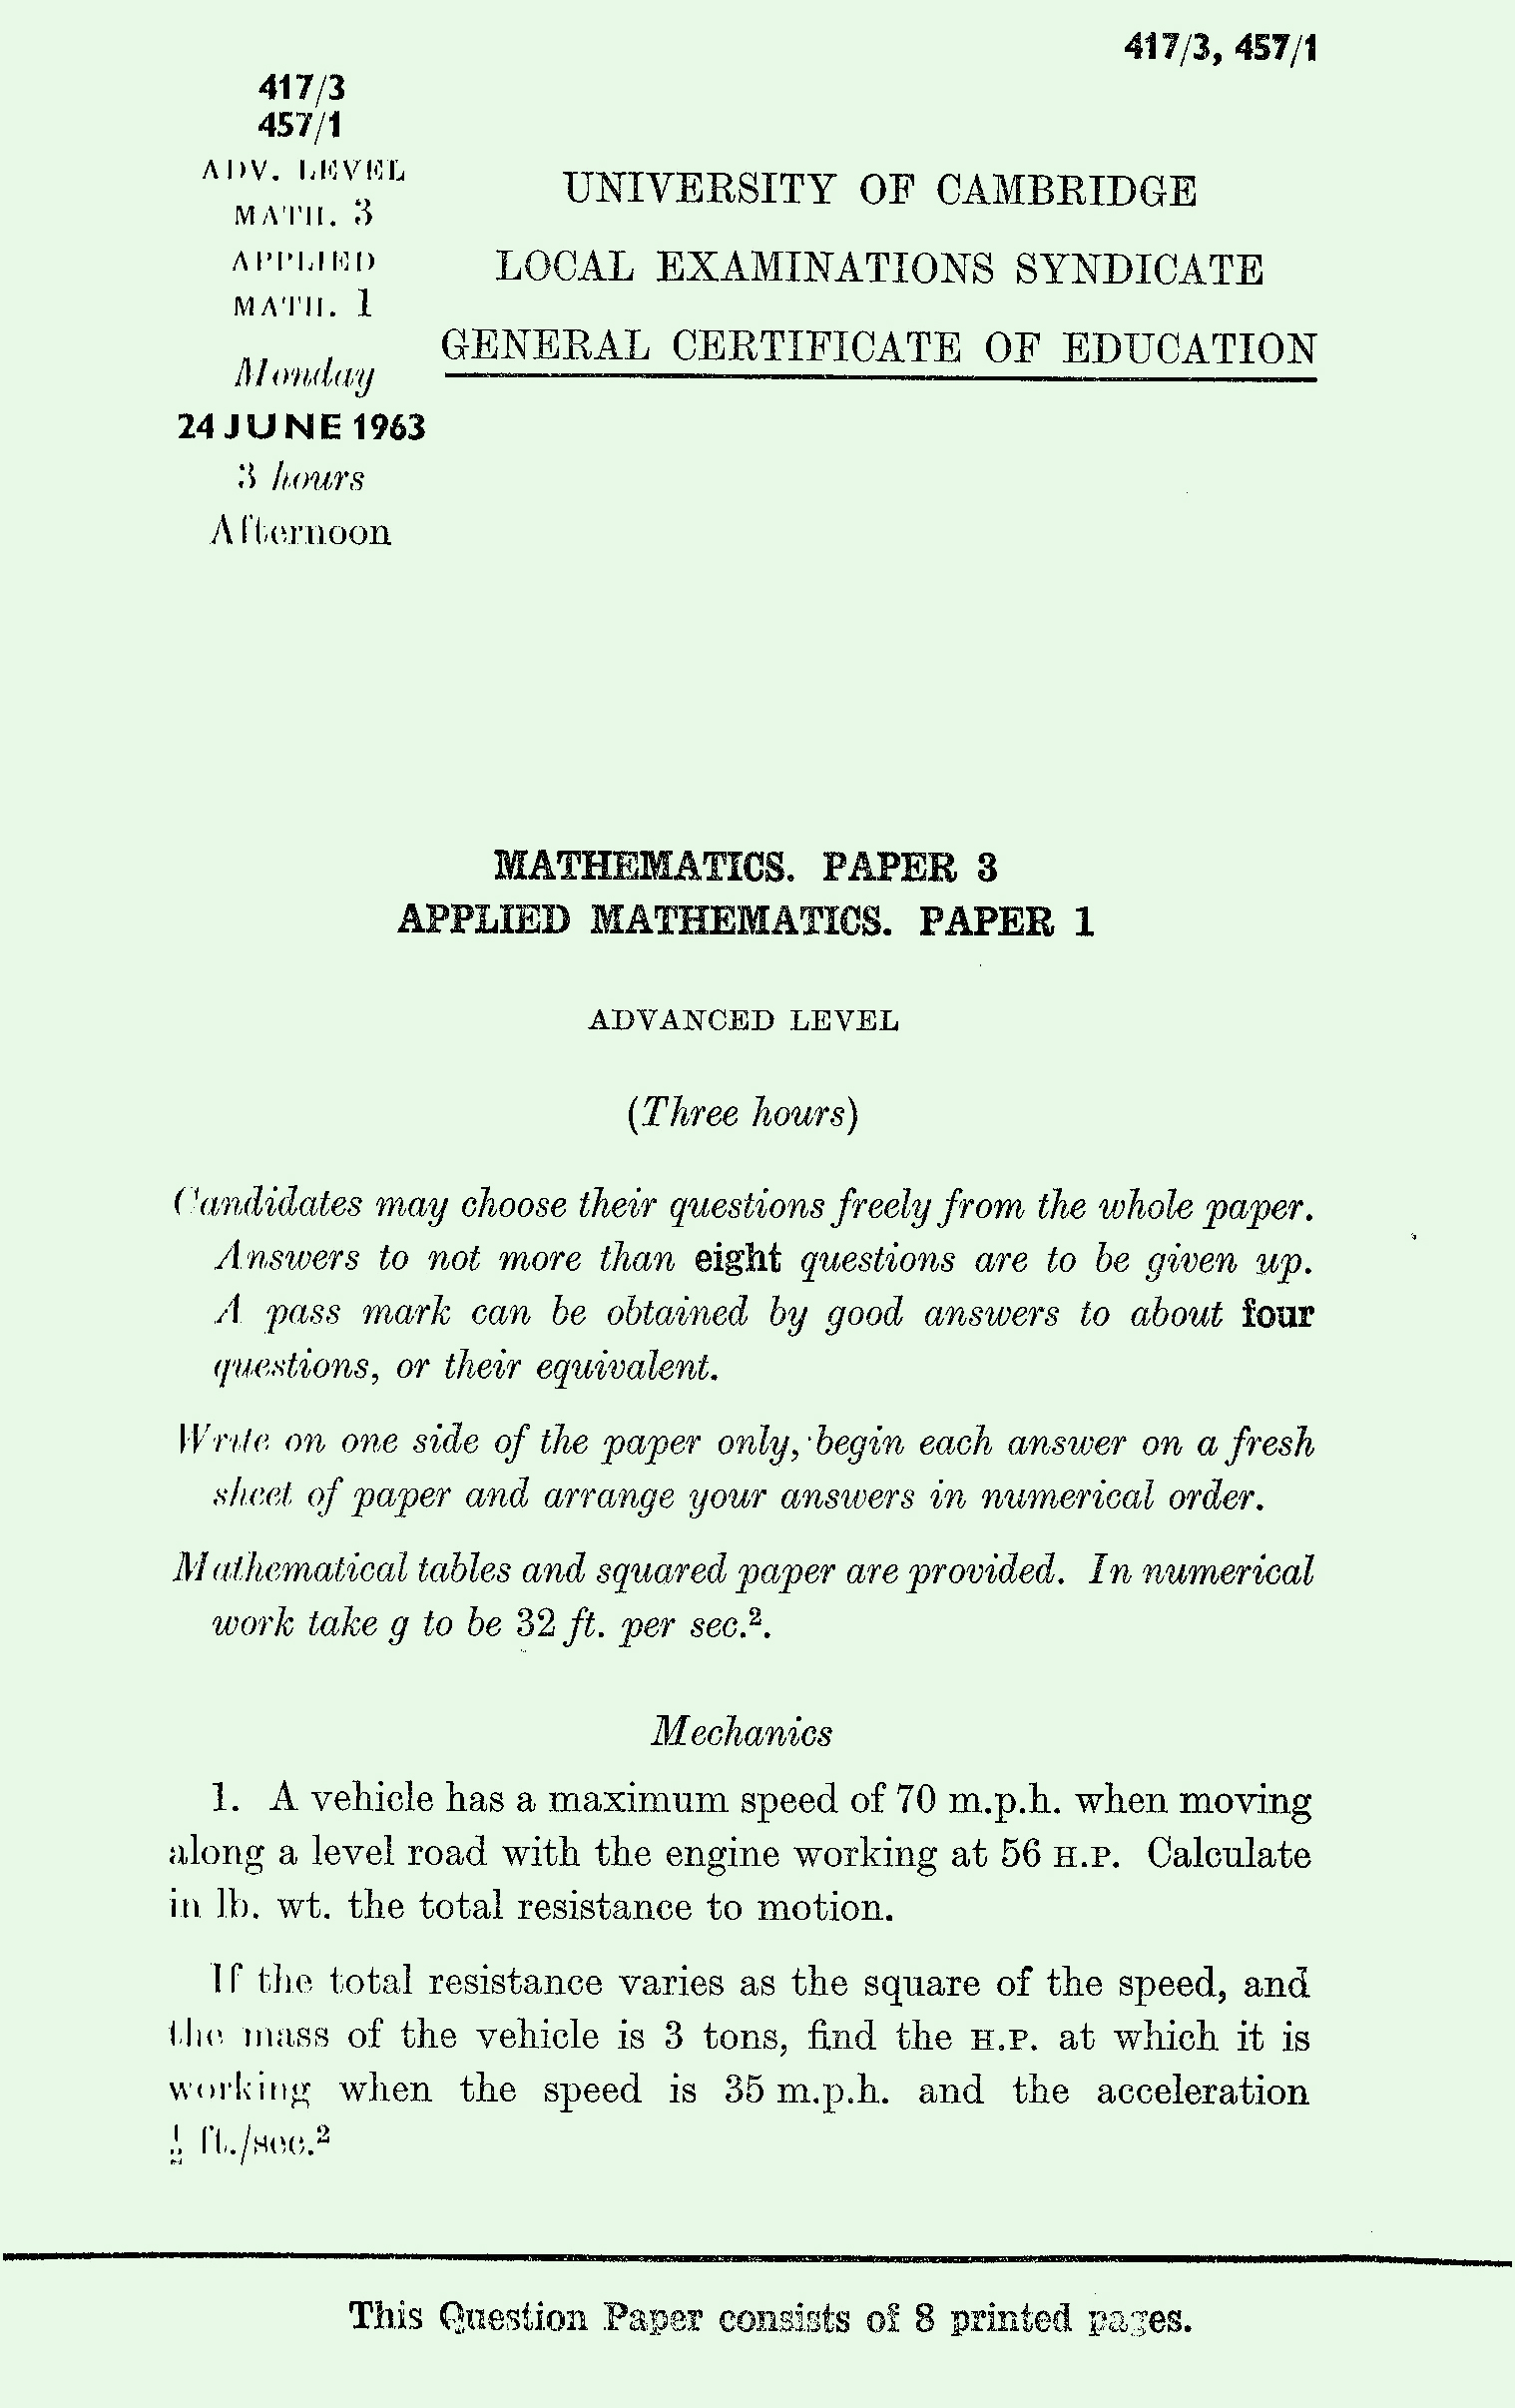 1963 Applied Mathematics A Level & S Level Paper I page 1